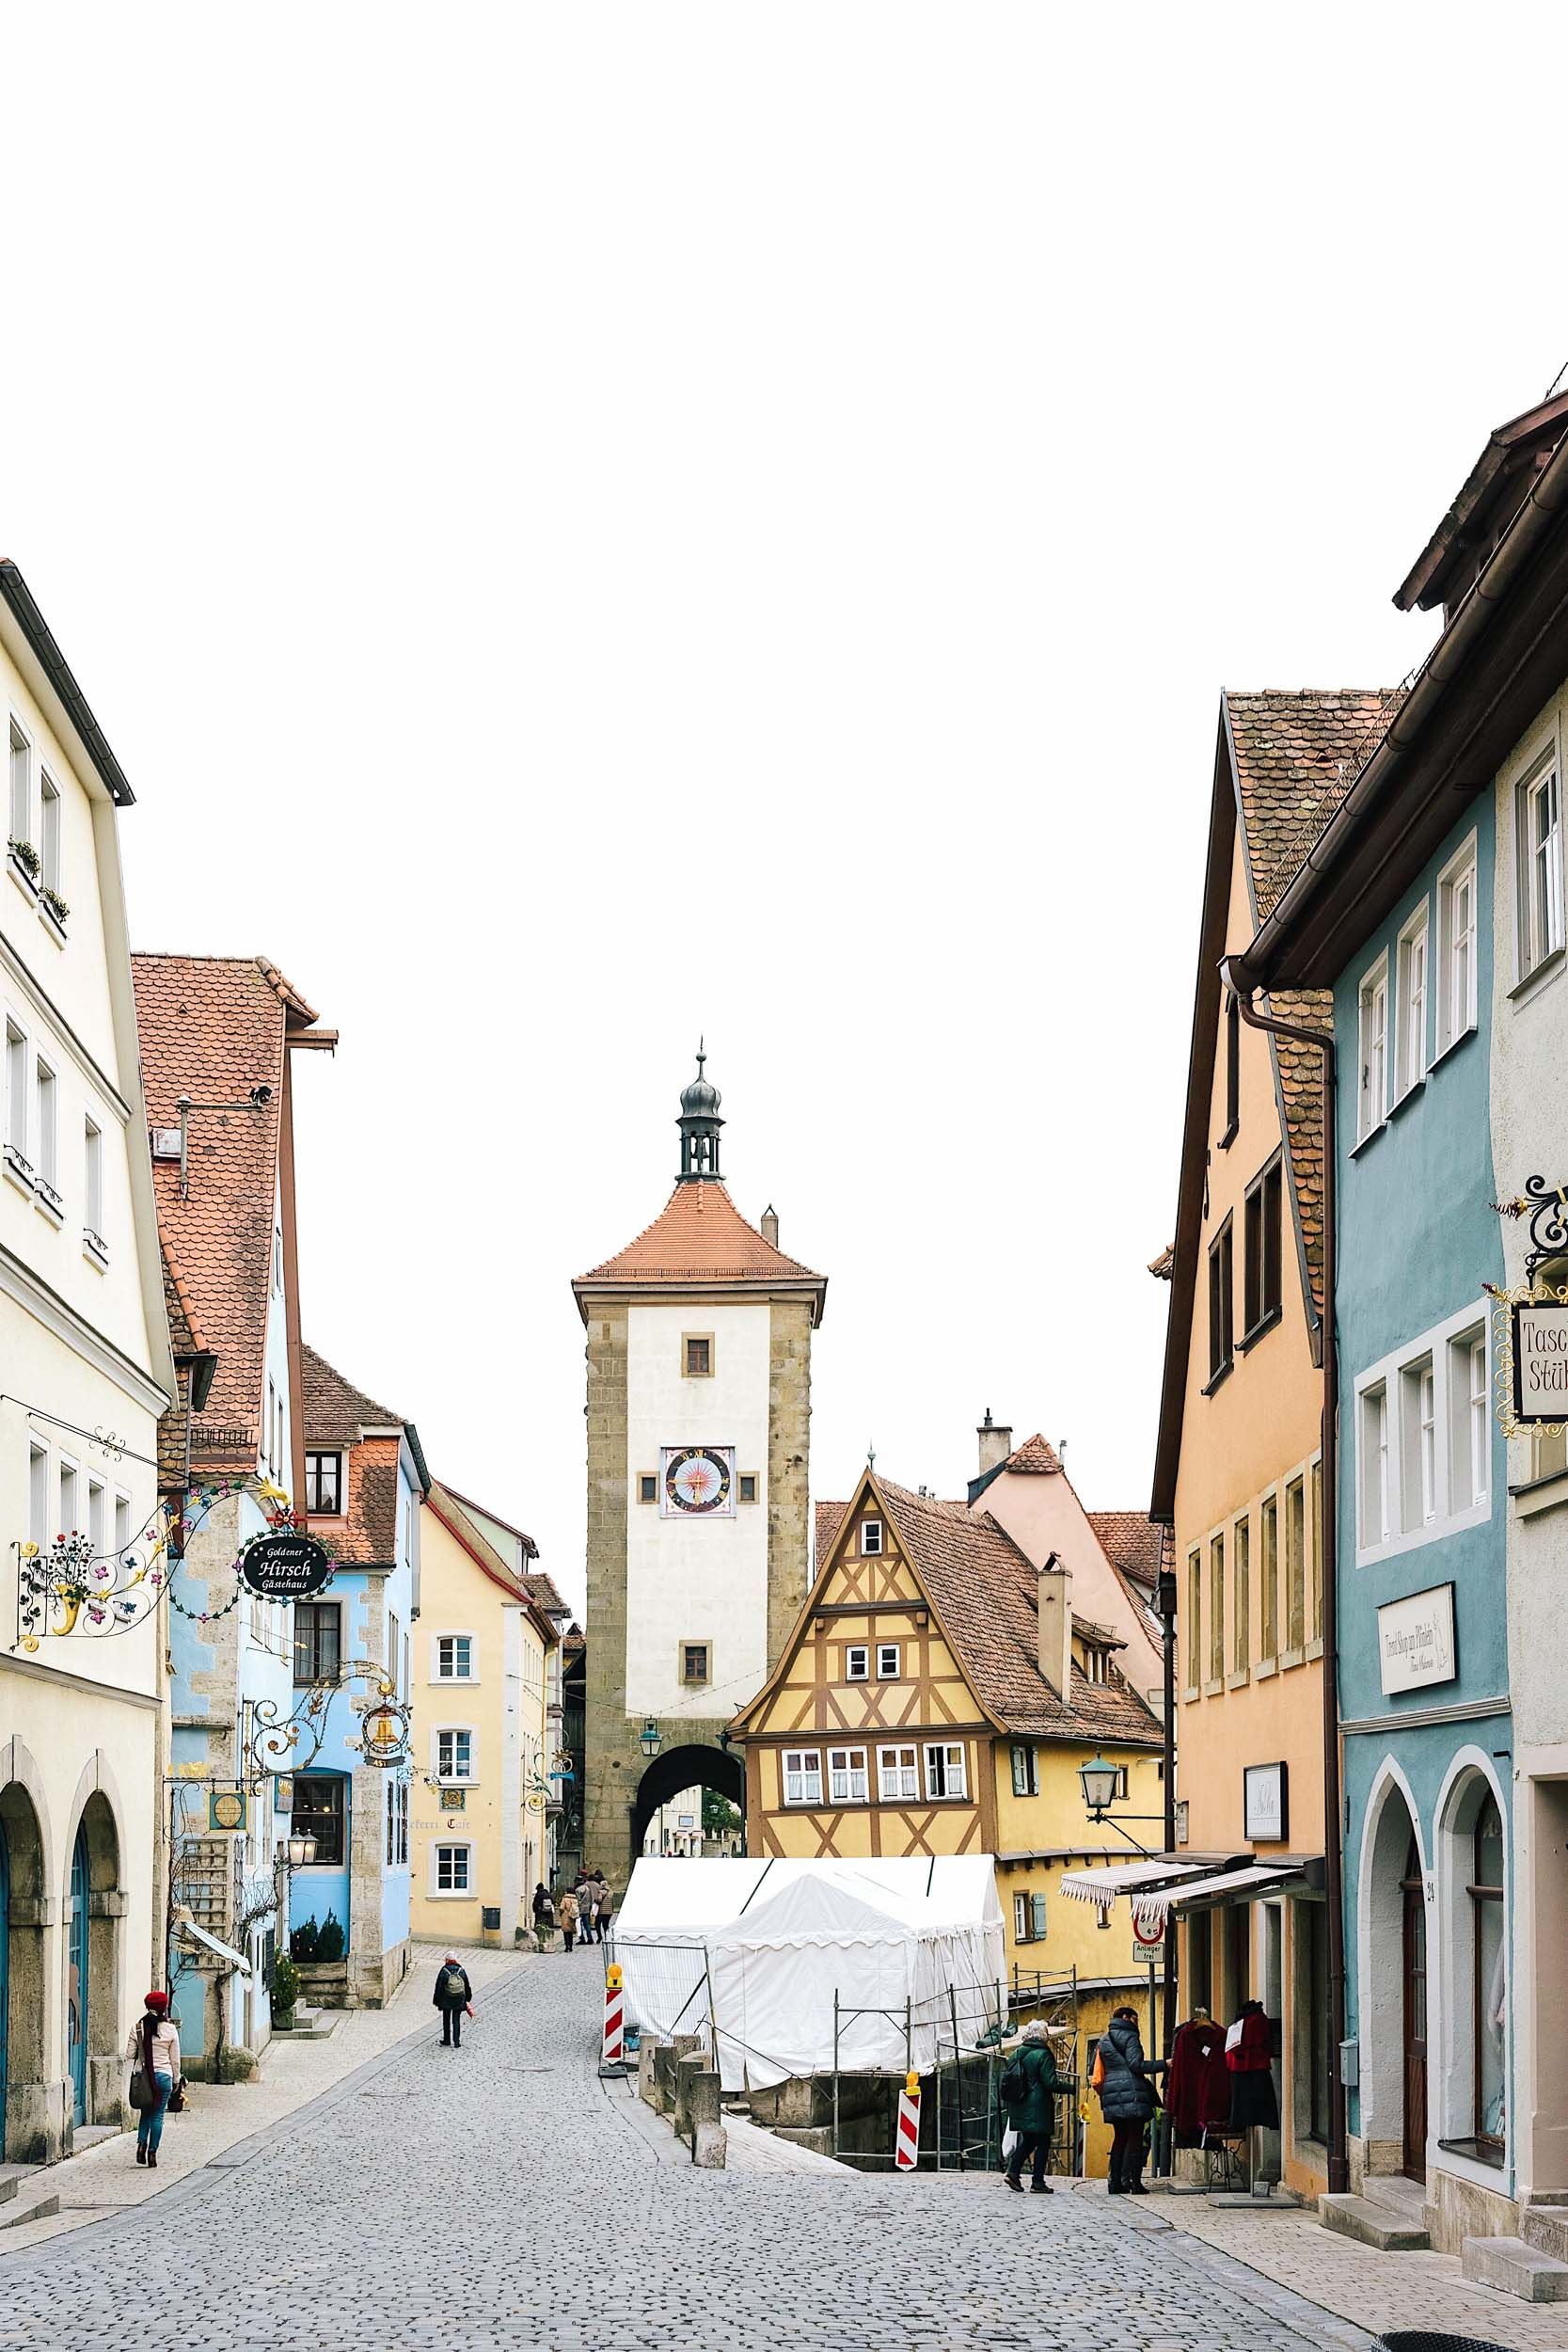 The iconic Rothenburg viewpoint